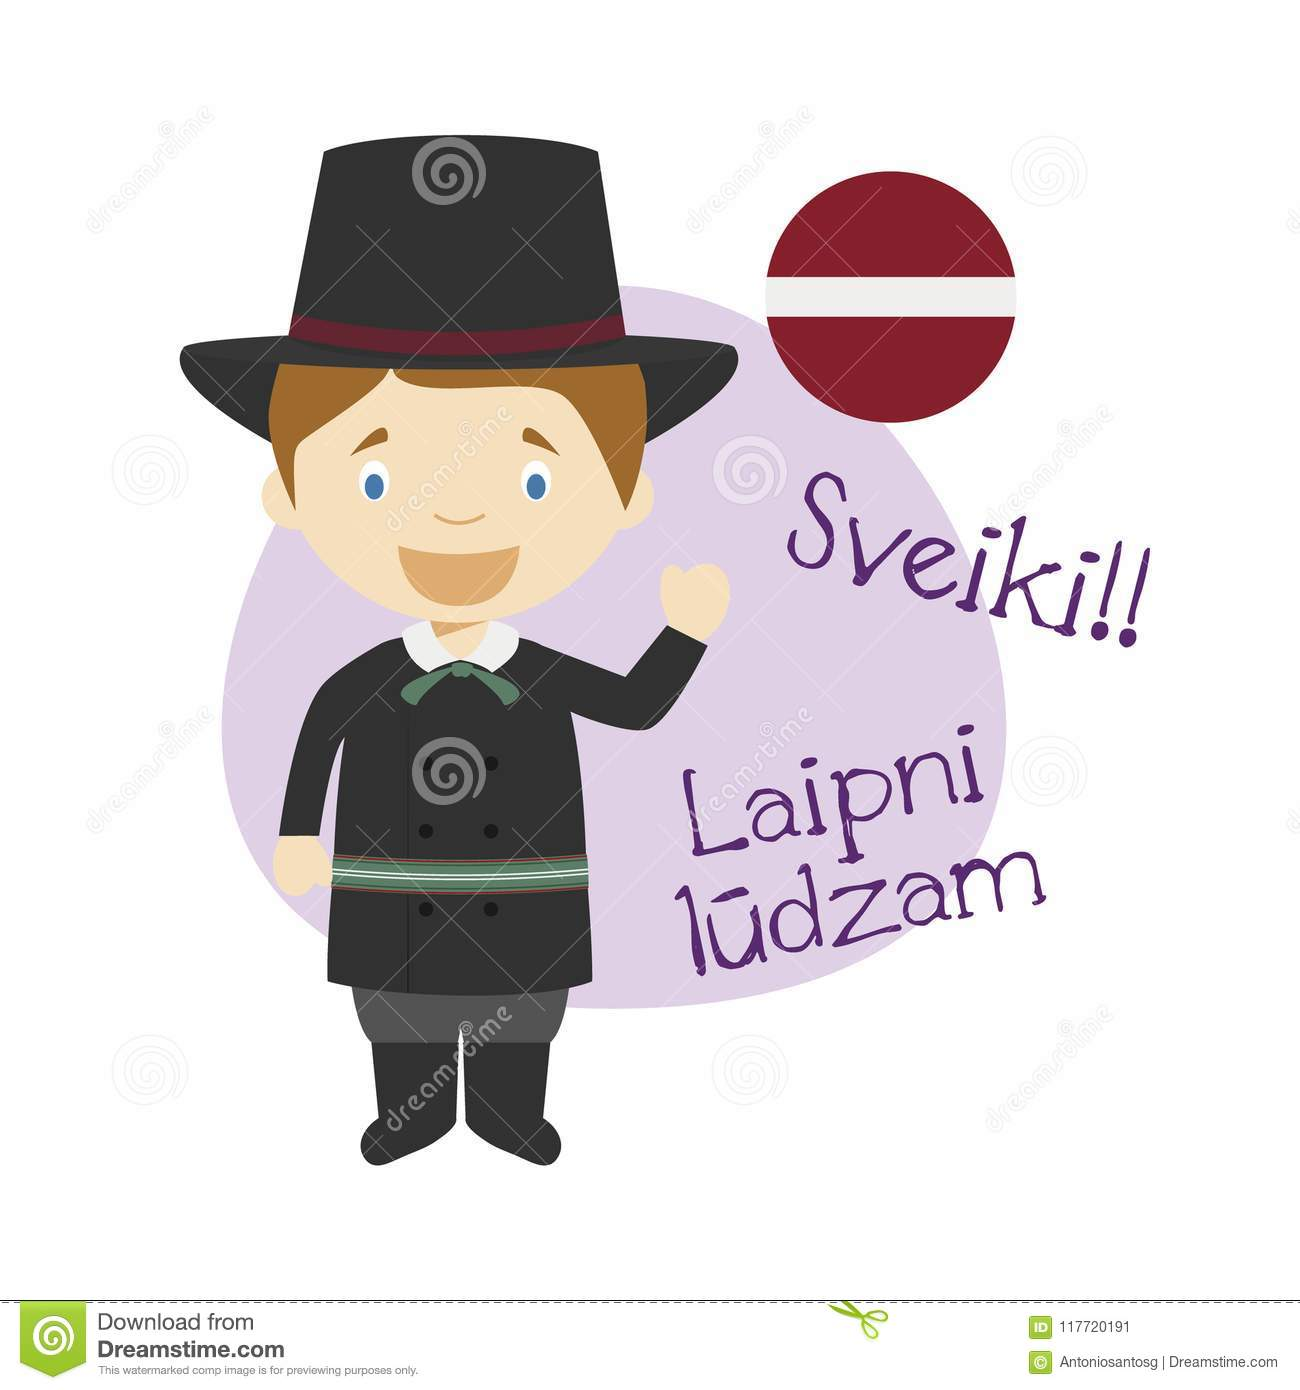 how to say hello in latvian